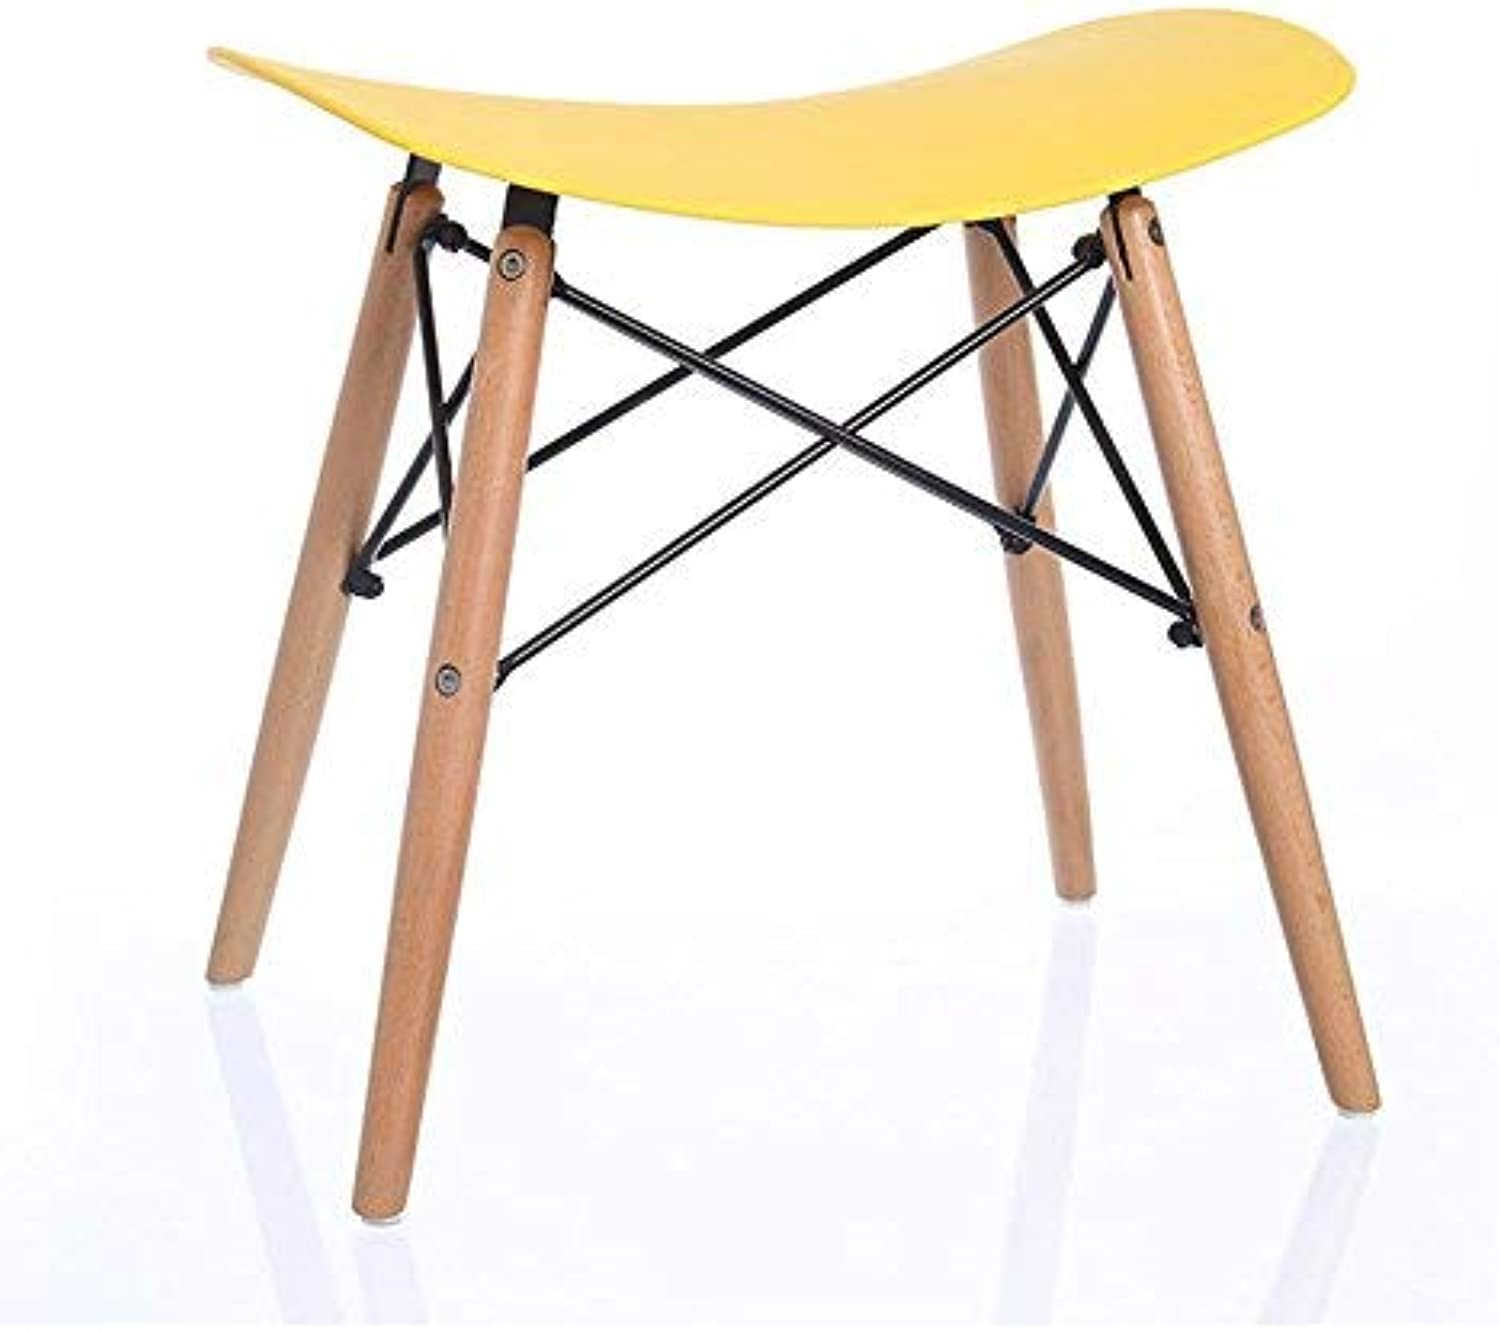 CWJ Chair Stool - Plastic Chair shoes shoes Restaurant Living Room Chair Bar Coffee Shop Flower Shop Chair Can Not redate Create Chair Adult Home Stool